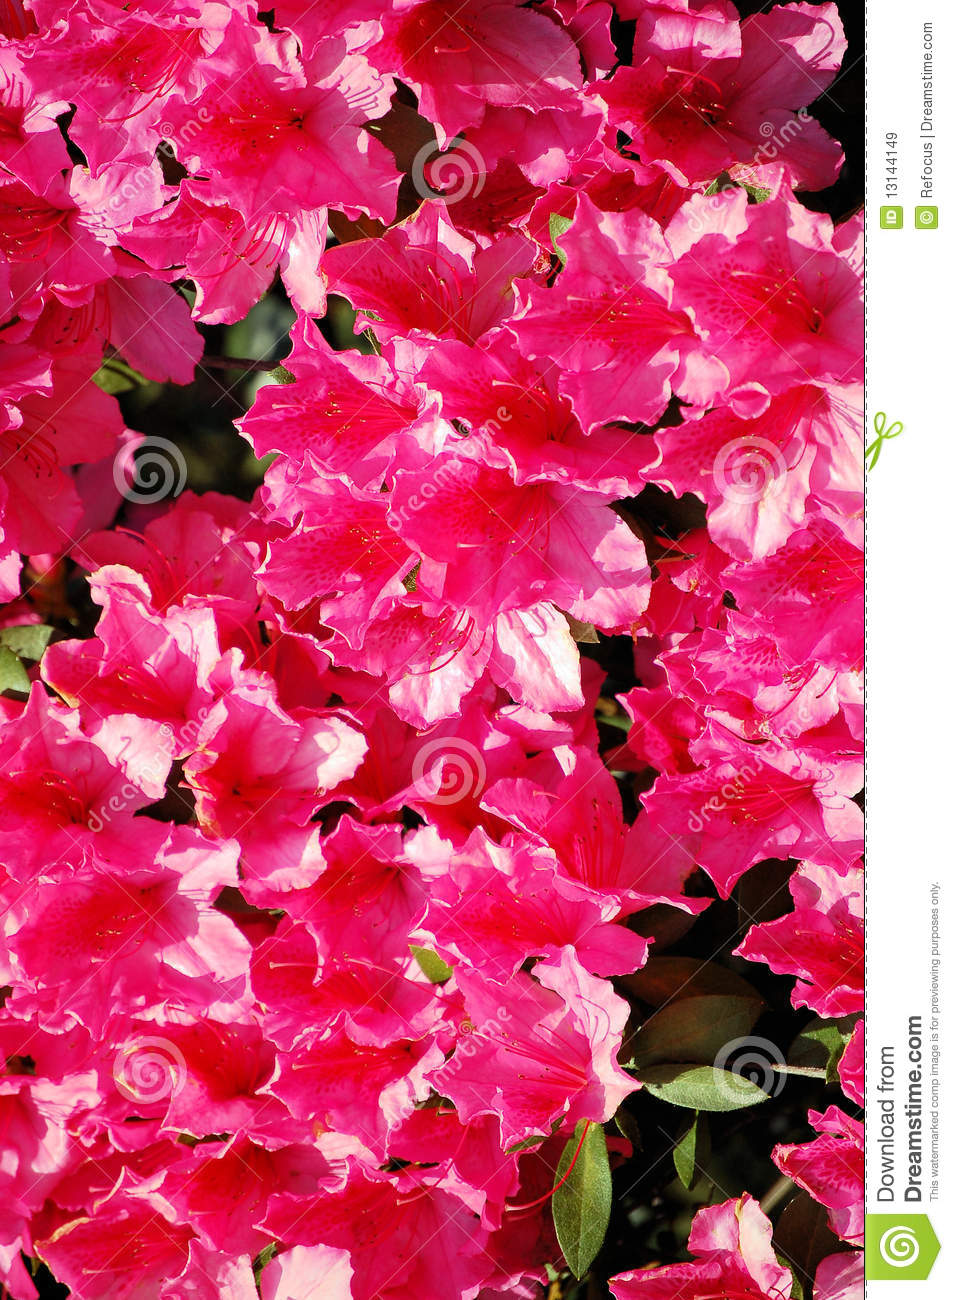 hot pink flowers royalty free stock images  image, Natural flower